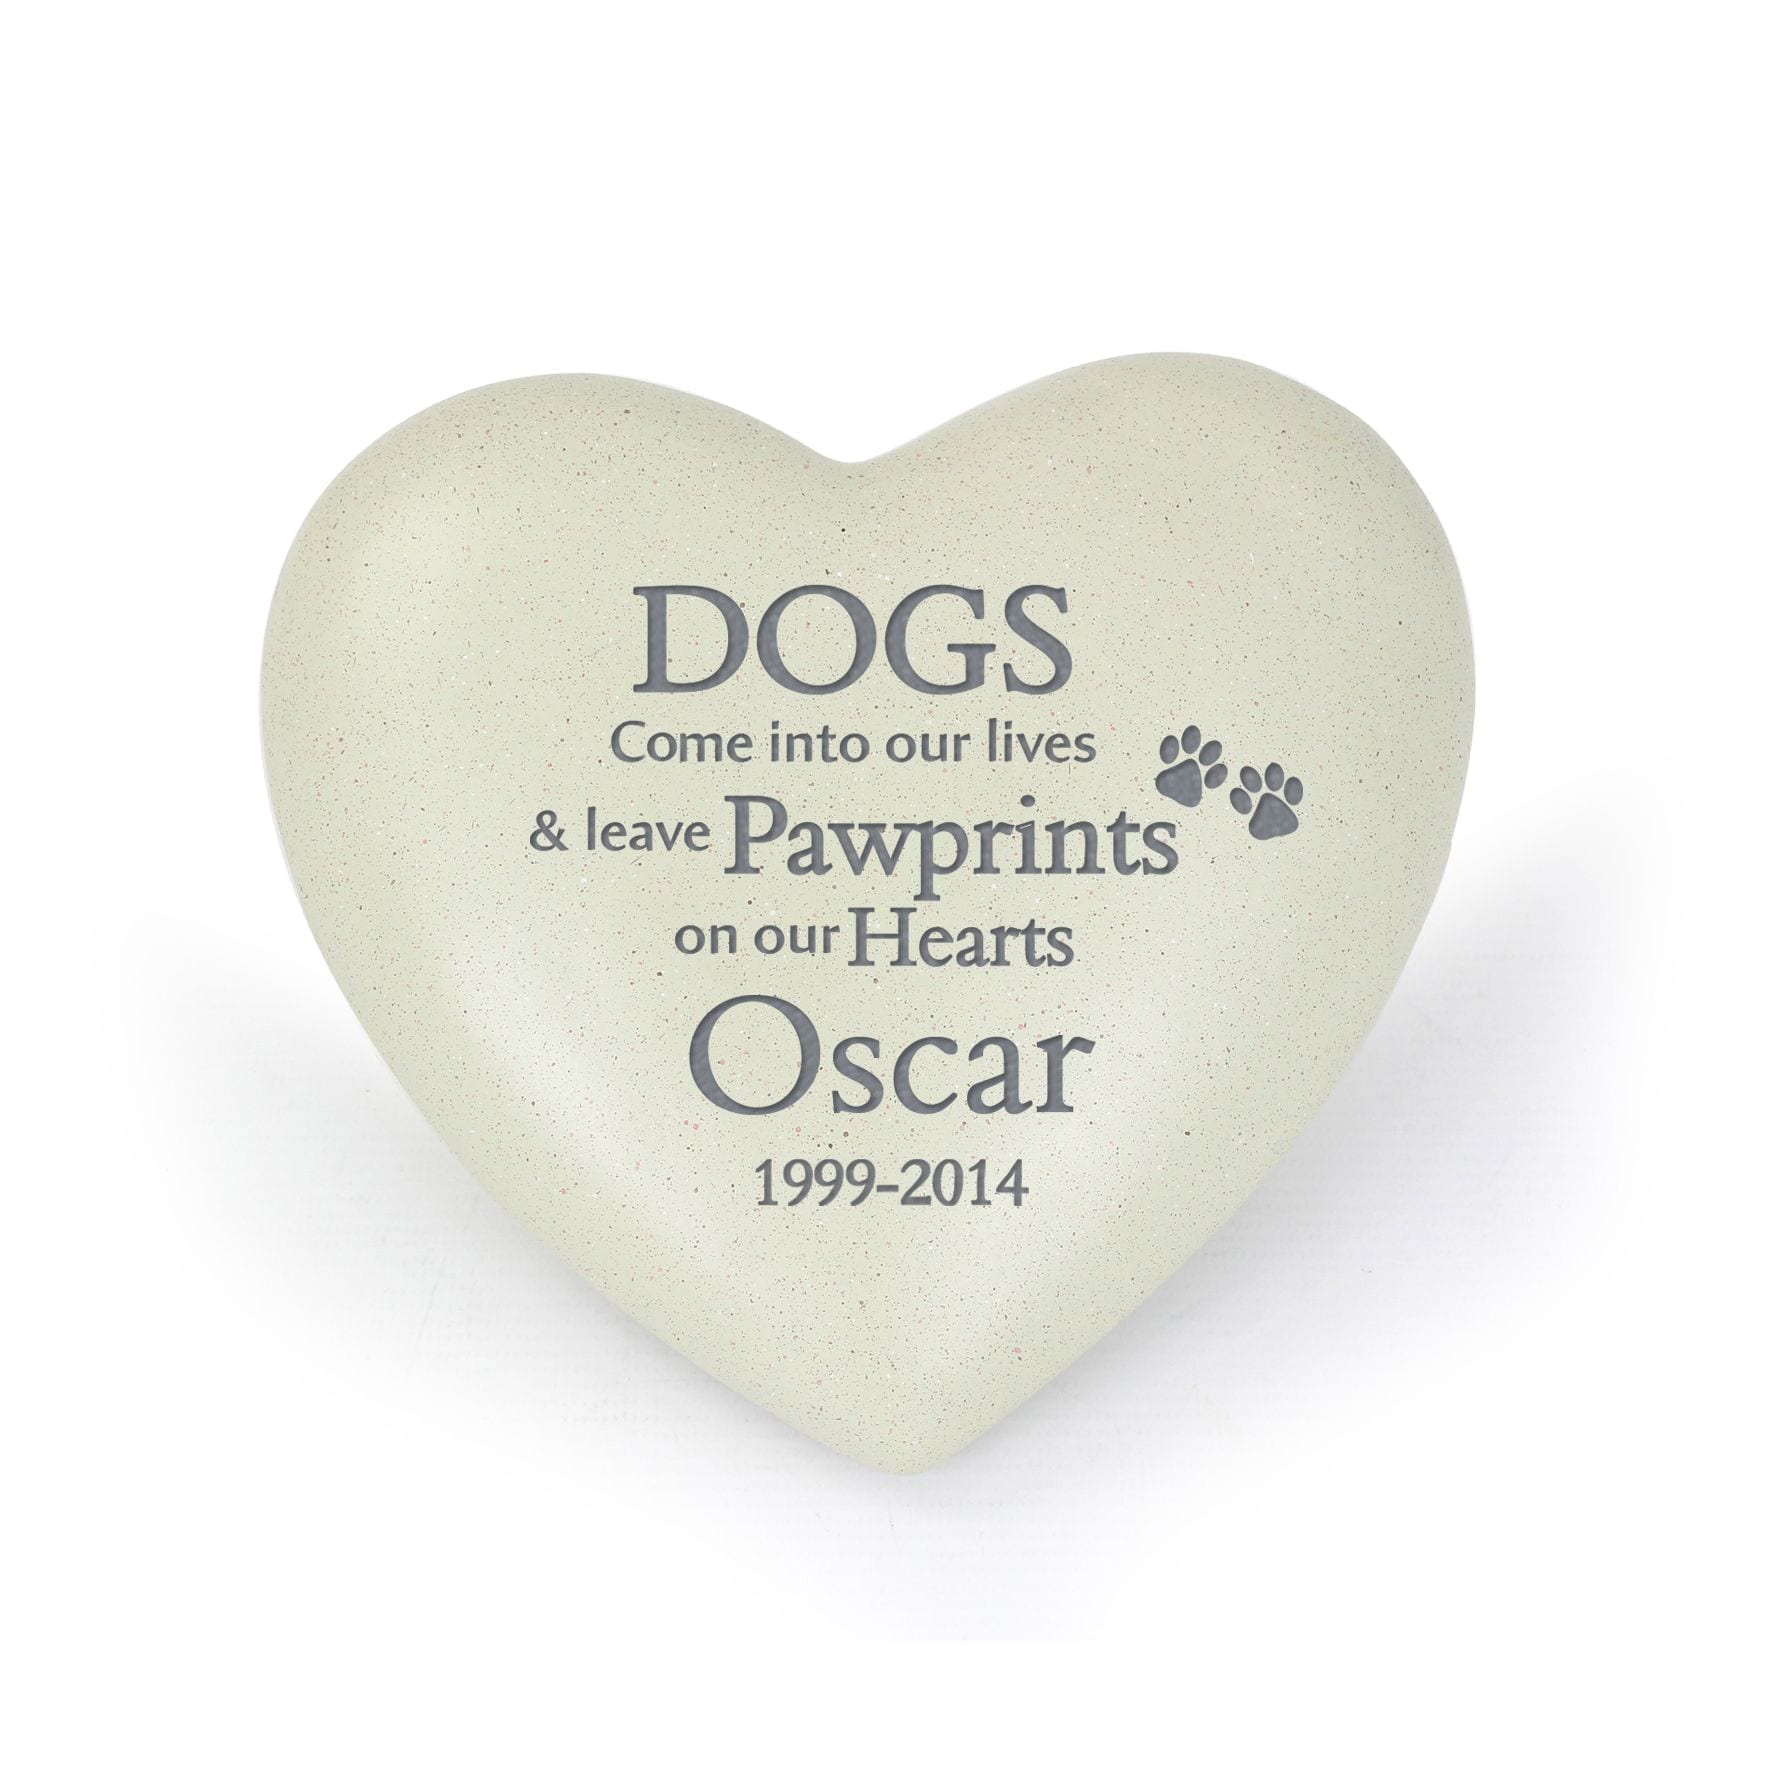 dog-pawprints-heart-memorial-9813-p.jpg